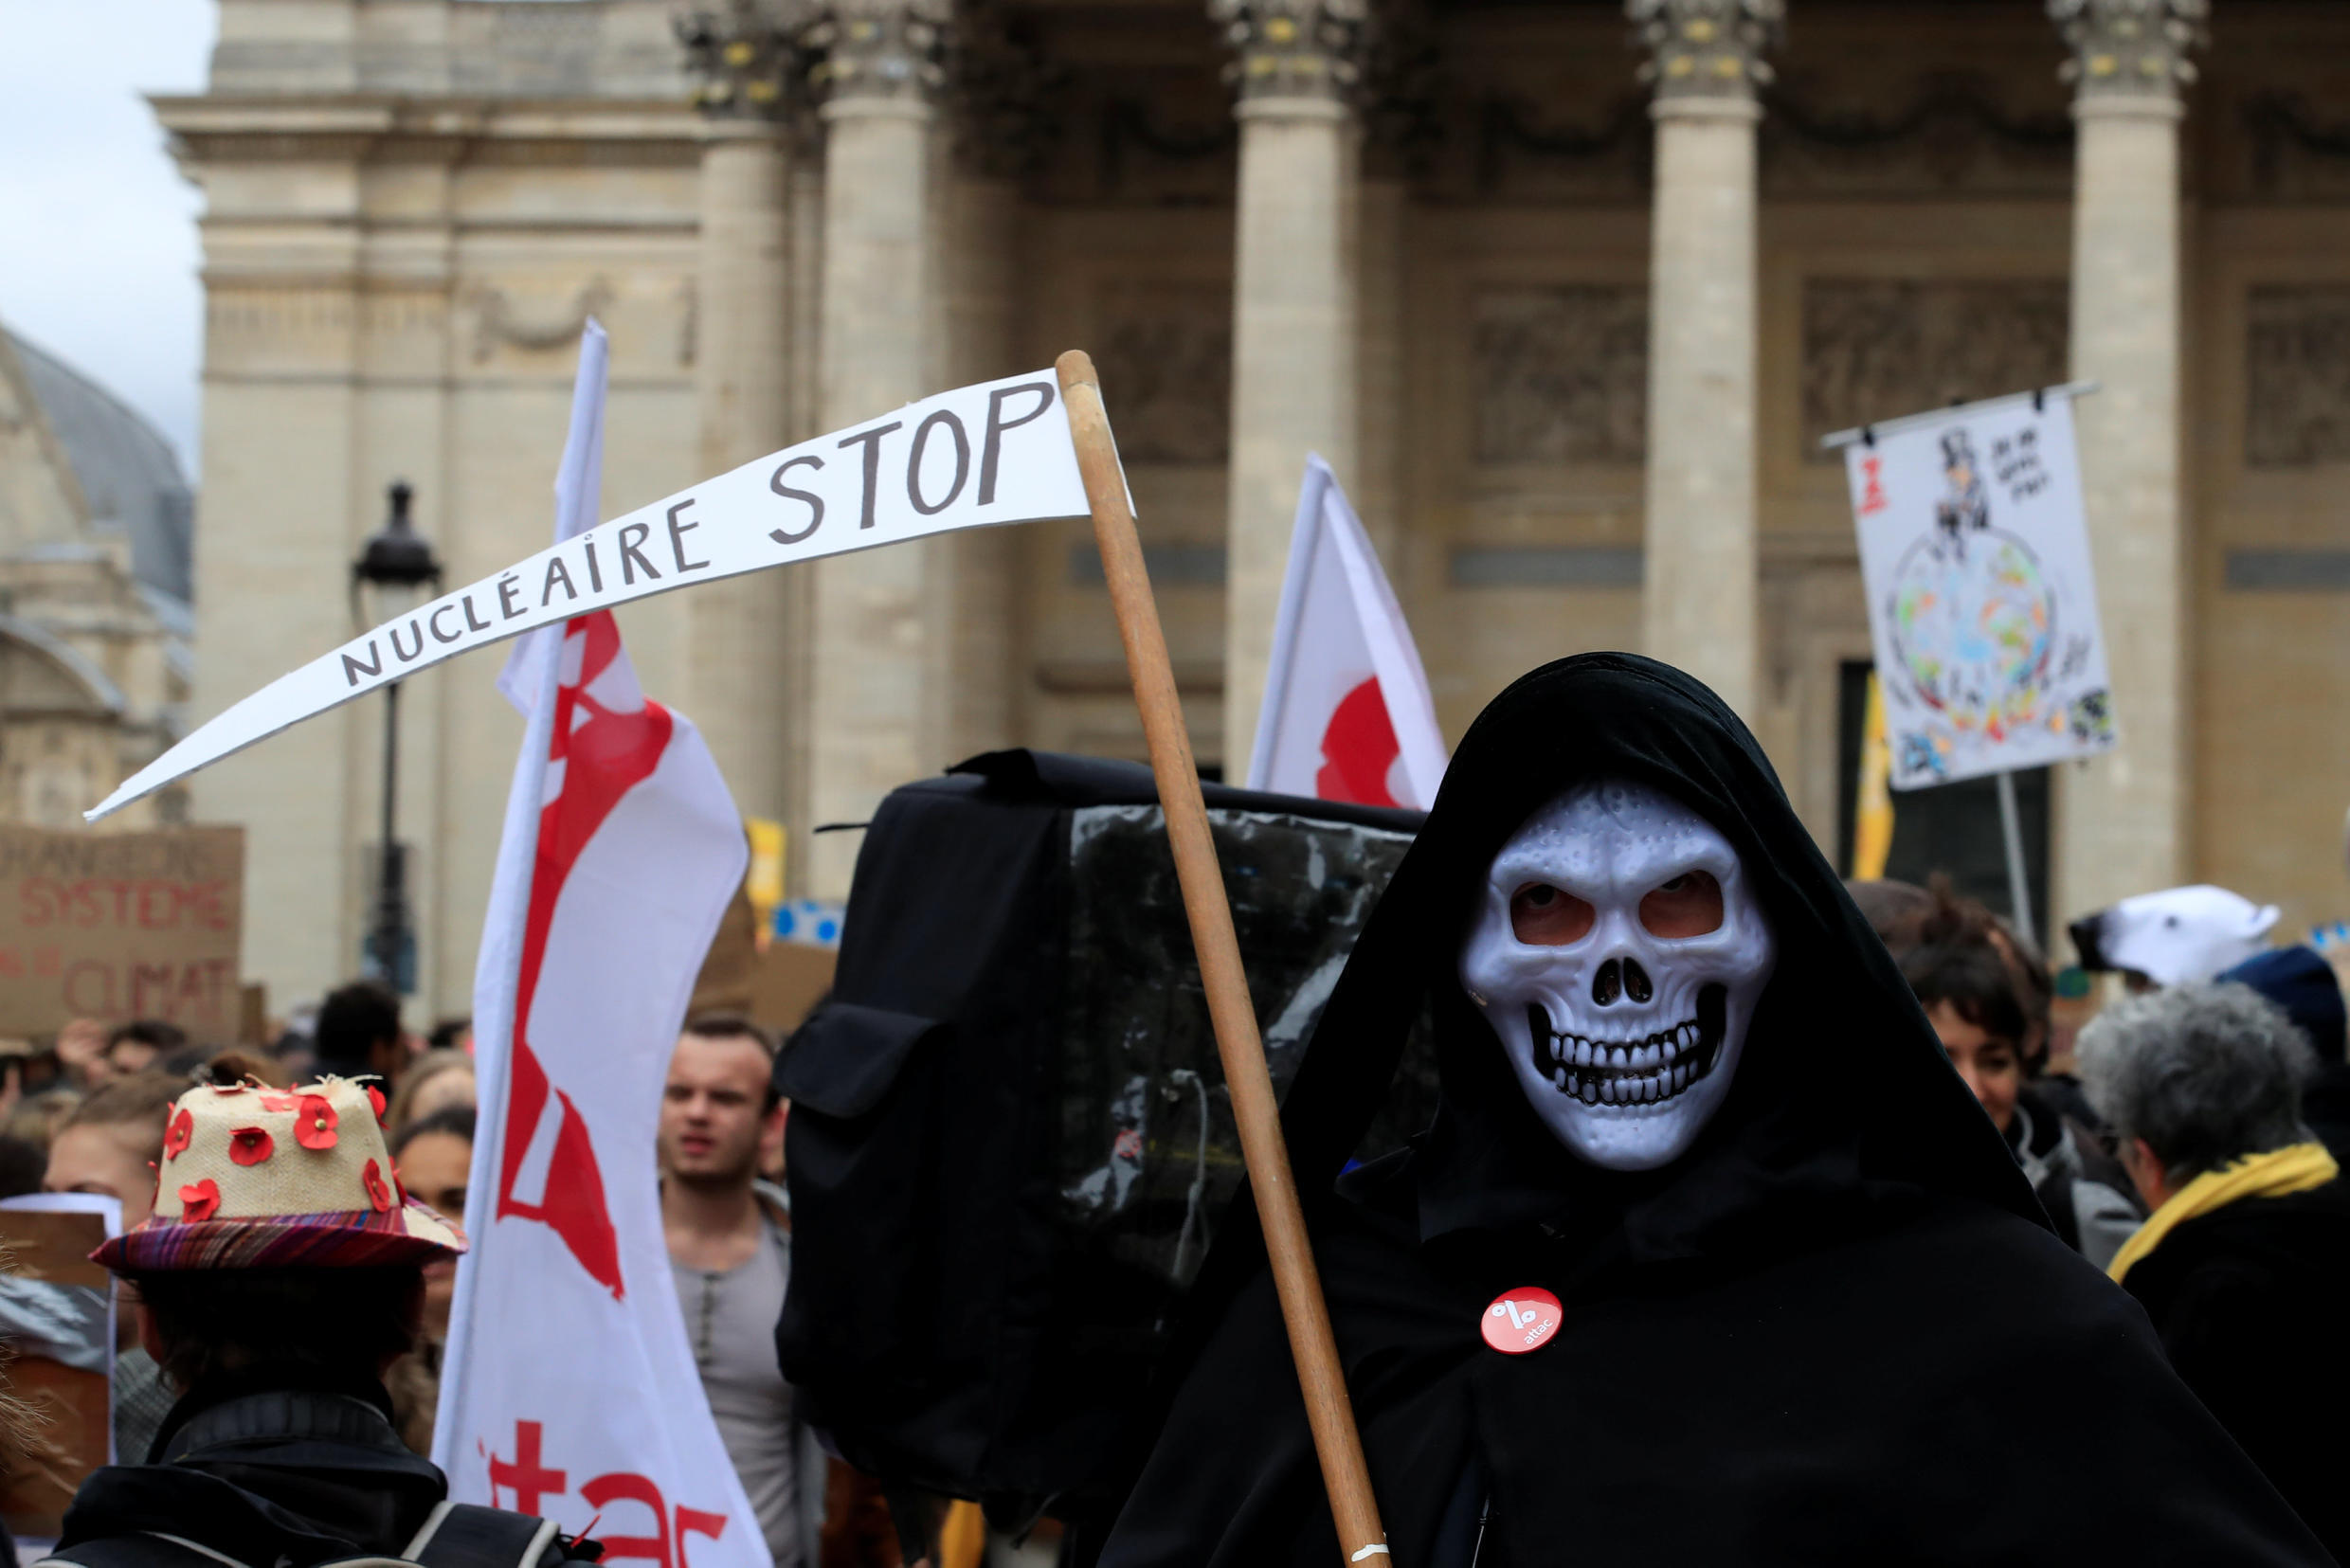 The first youth climate demonstration in Paris, 15 March 2019